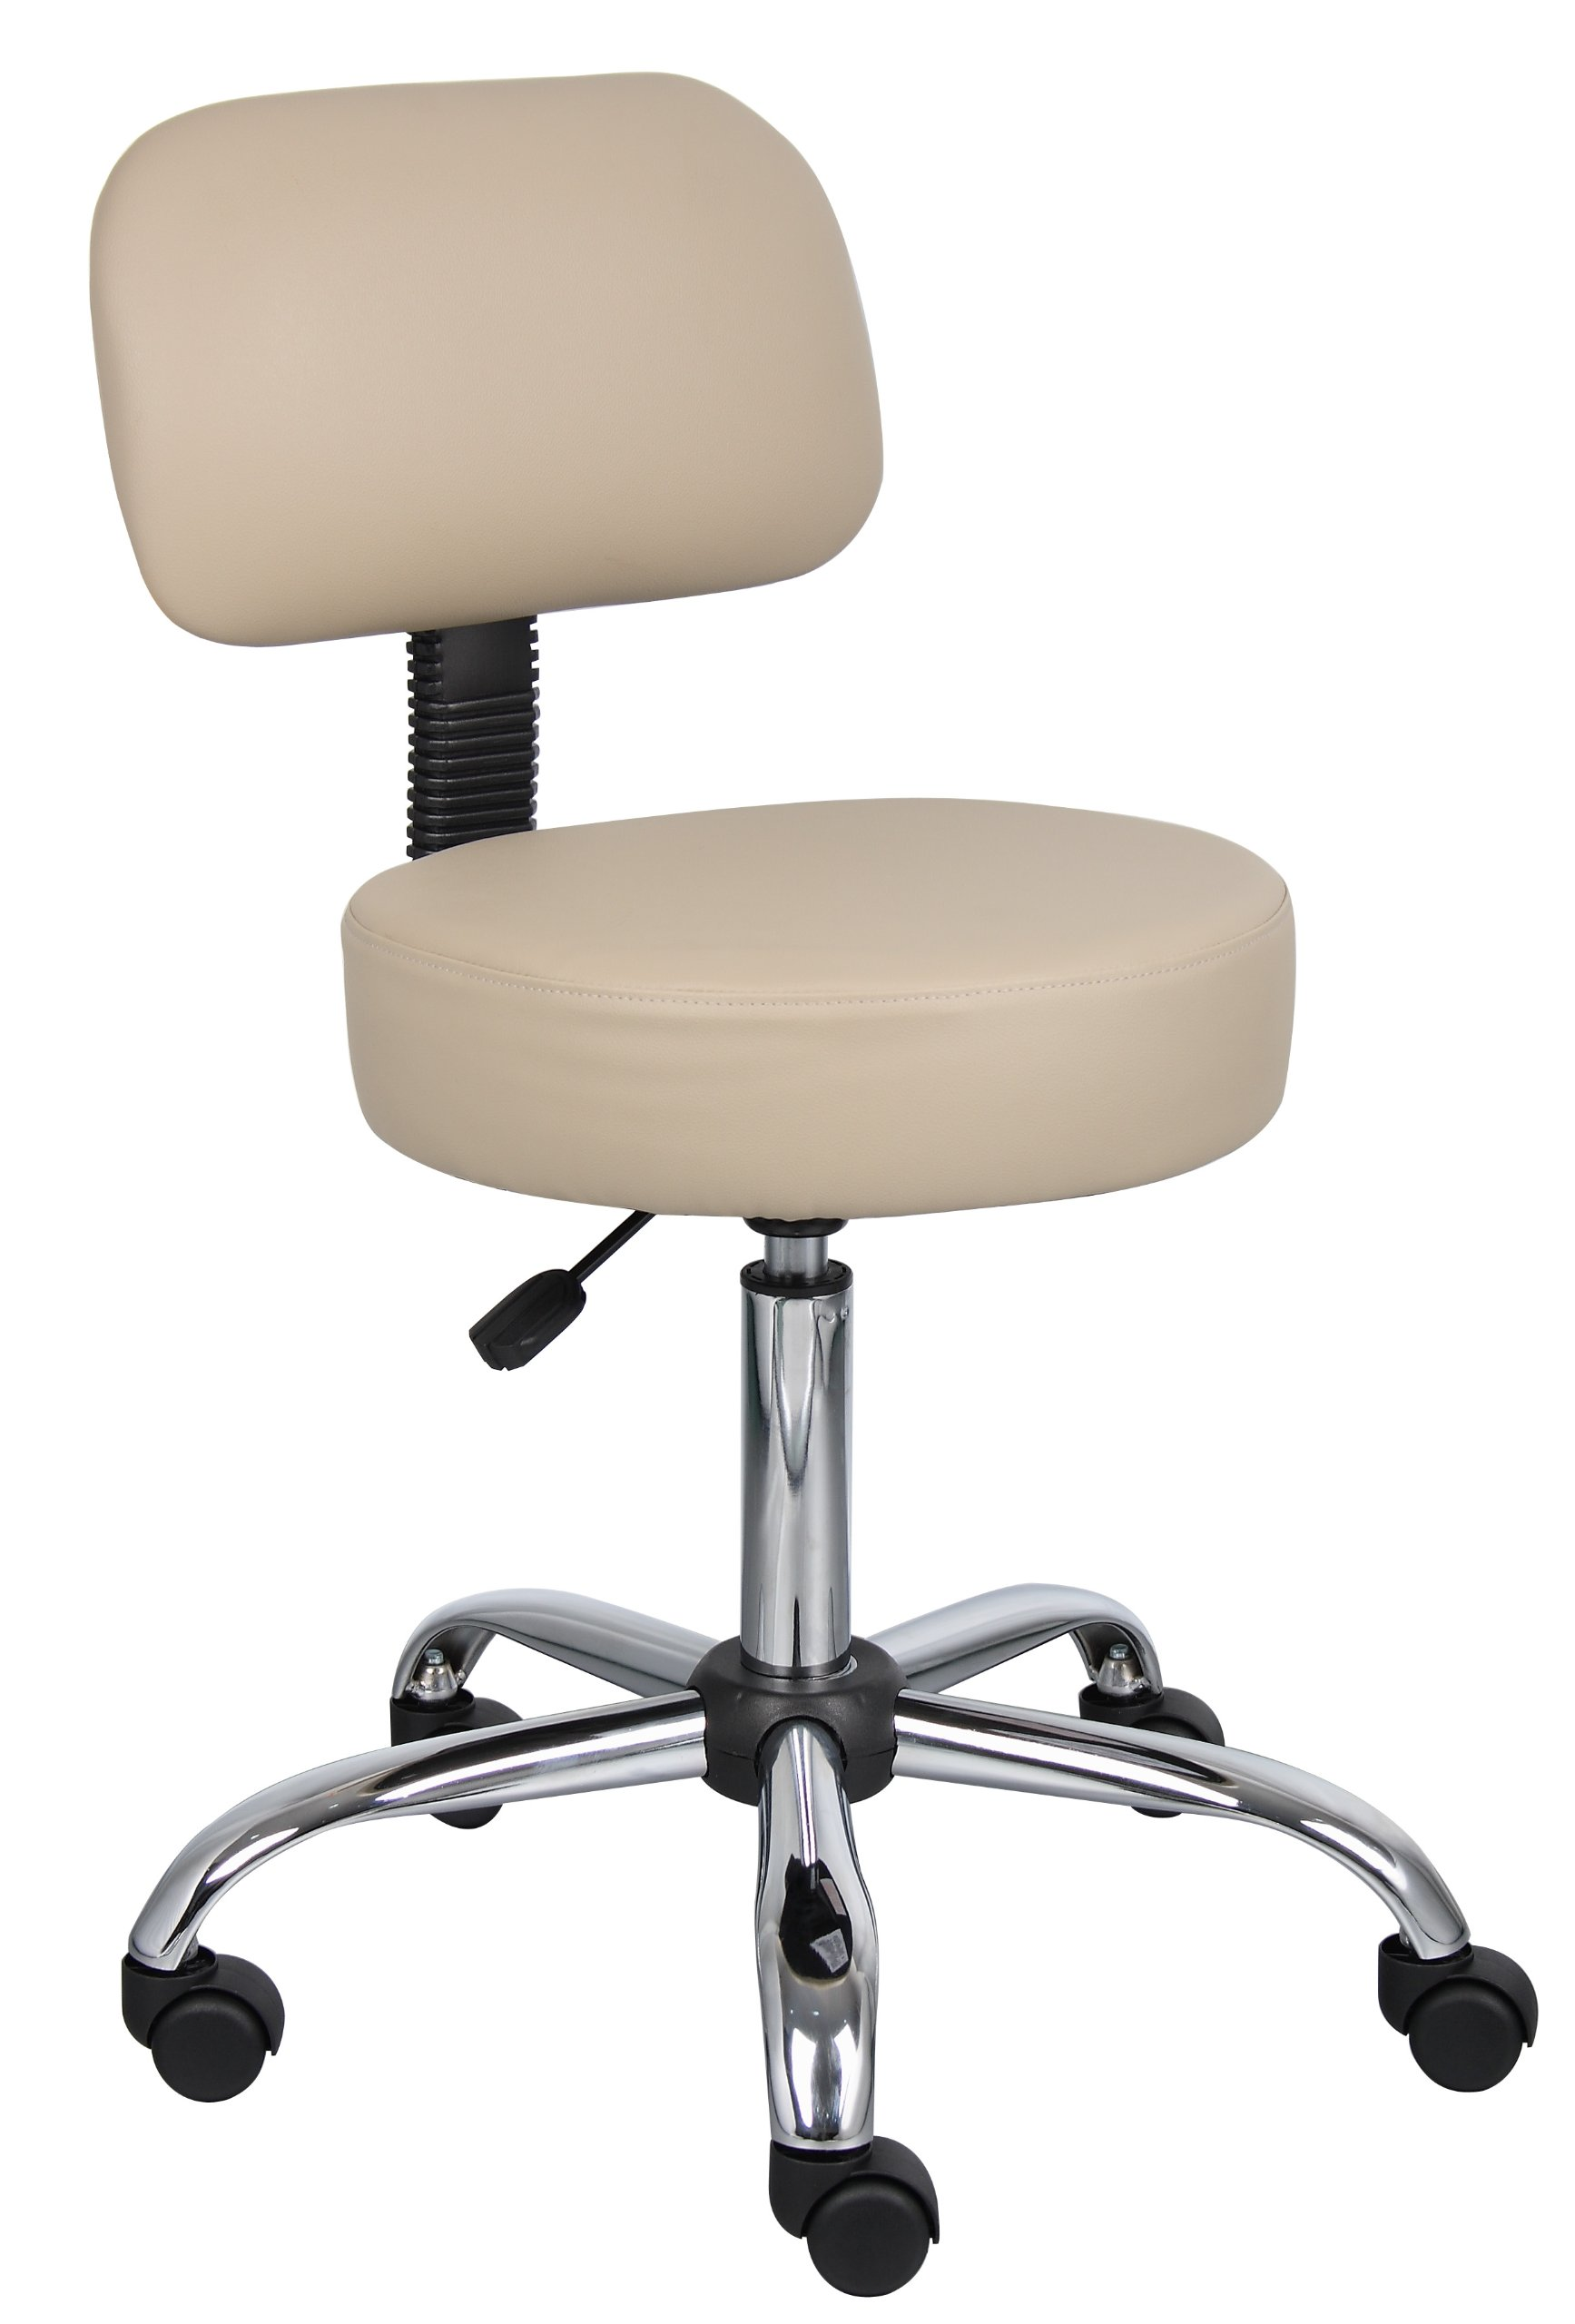 products helpful drafting rated with medical pcr be best well bg chairs chair in spa stool reviews customer beige back boss office